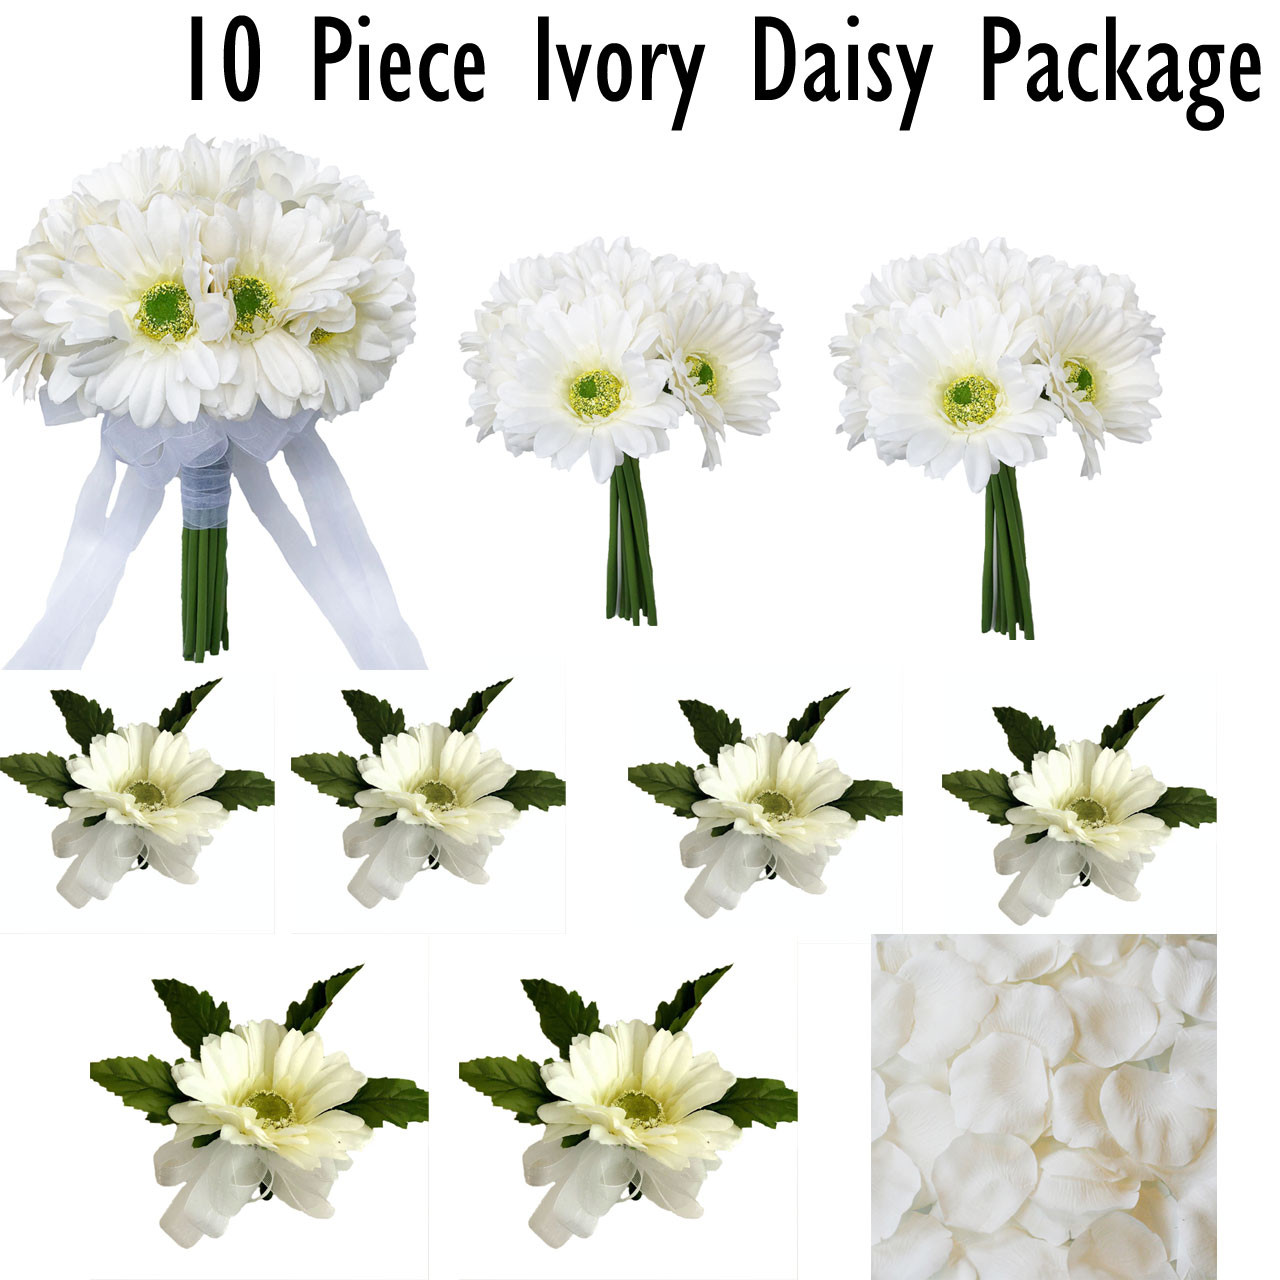 ivory daisy flower package | bridal bouquet | artificial wedding flowers |  silk wedding bouquets | corsage and boutonniere (10 pc package)